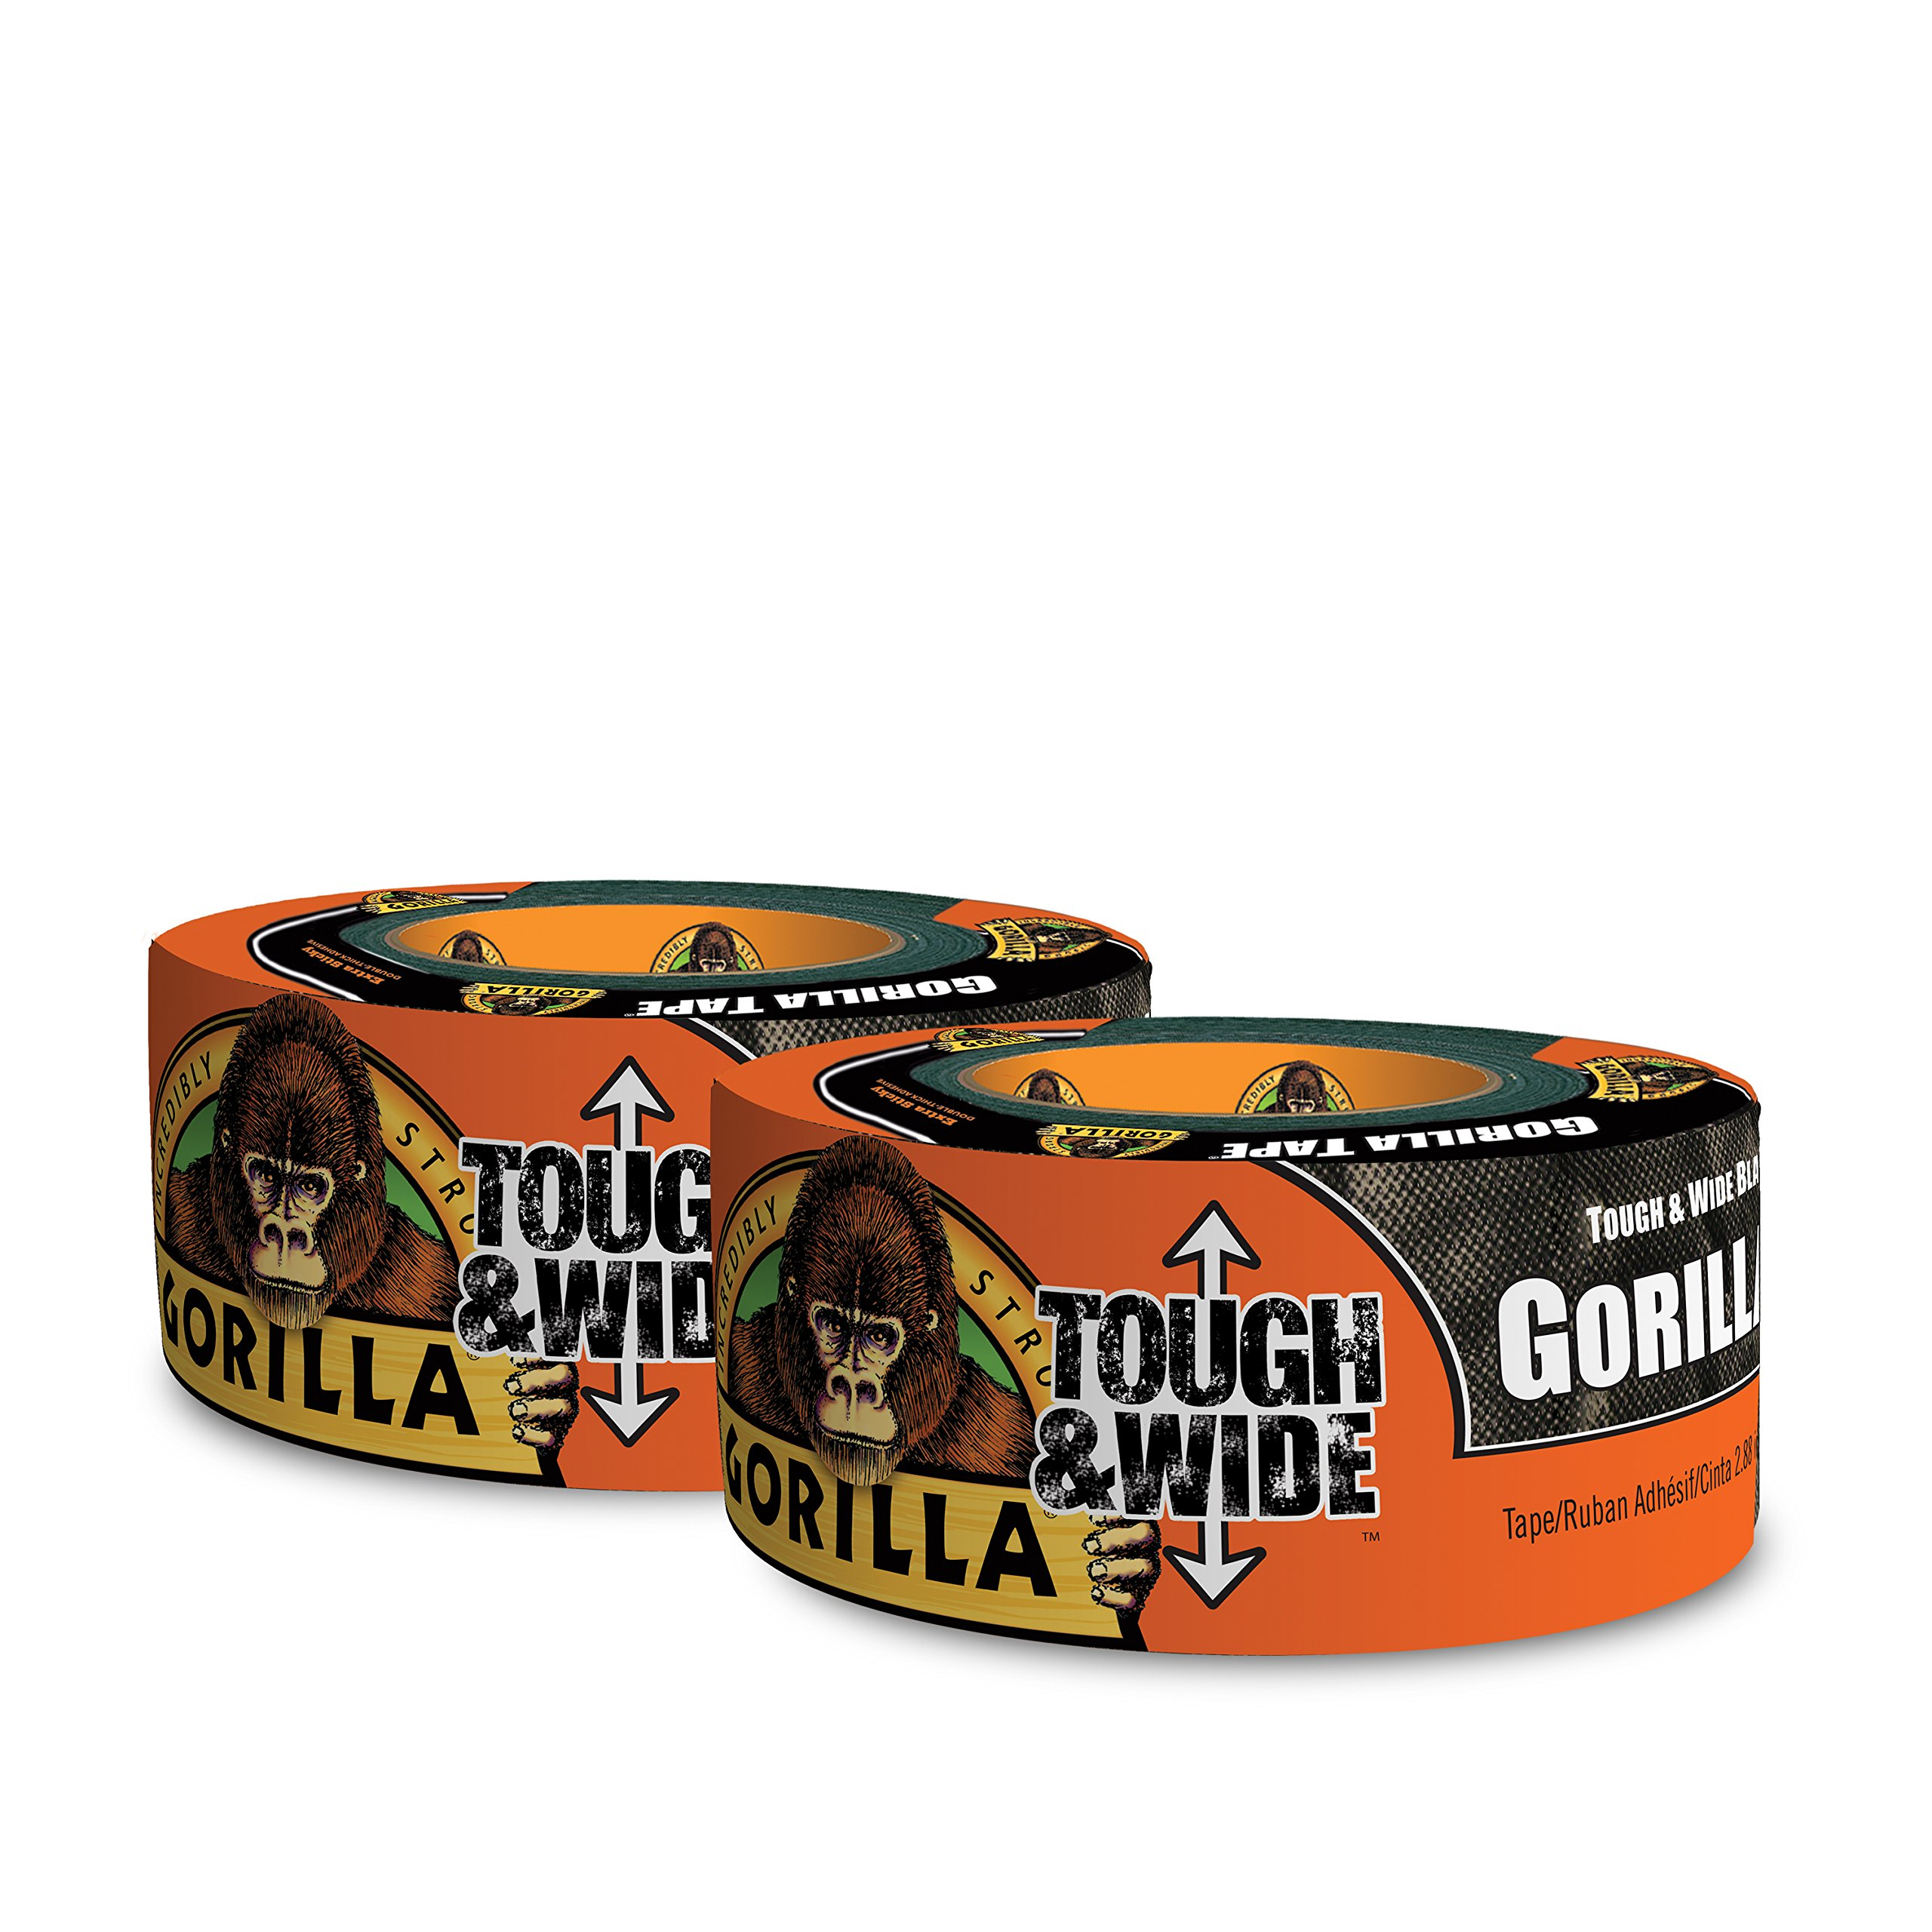 Gorilla Tape, Black Tough & Wide Duct Tape, 2.88'' x 30 yd, Black, (Pack of 2)